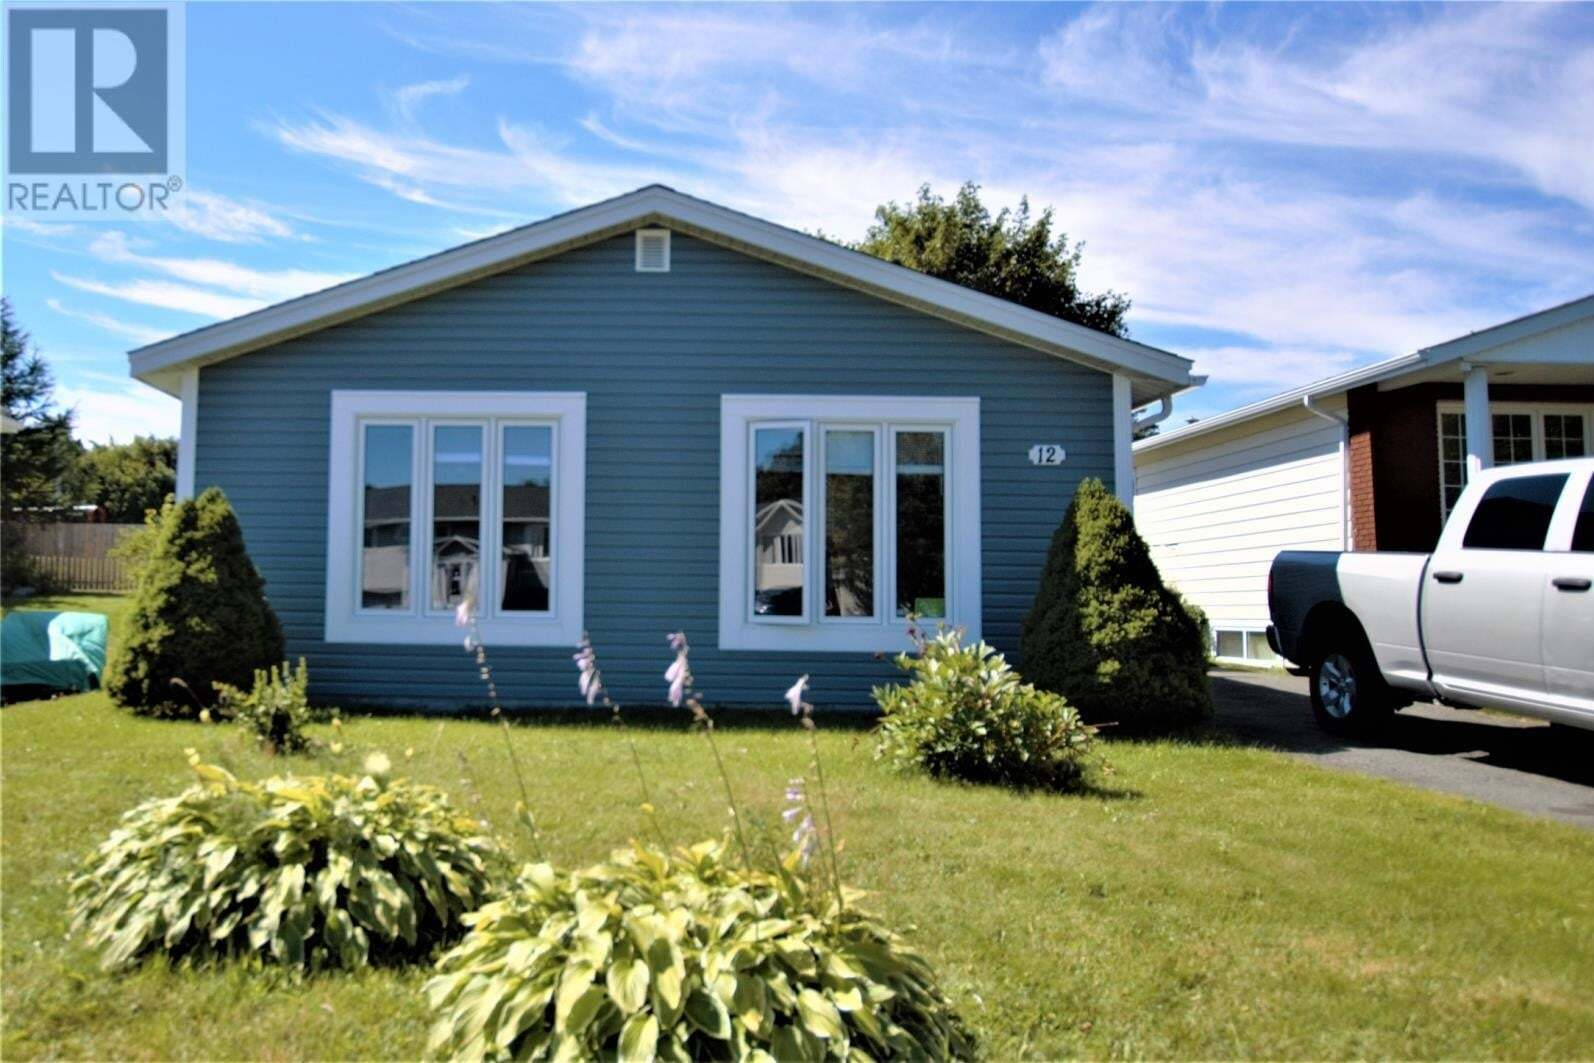 House for sale at 12 Yale Pl Mt. Pearl Newfoundland - MLS: 1220559